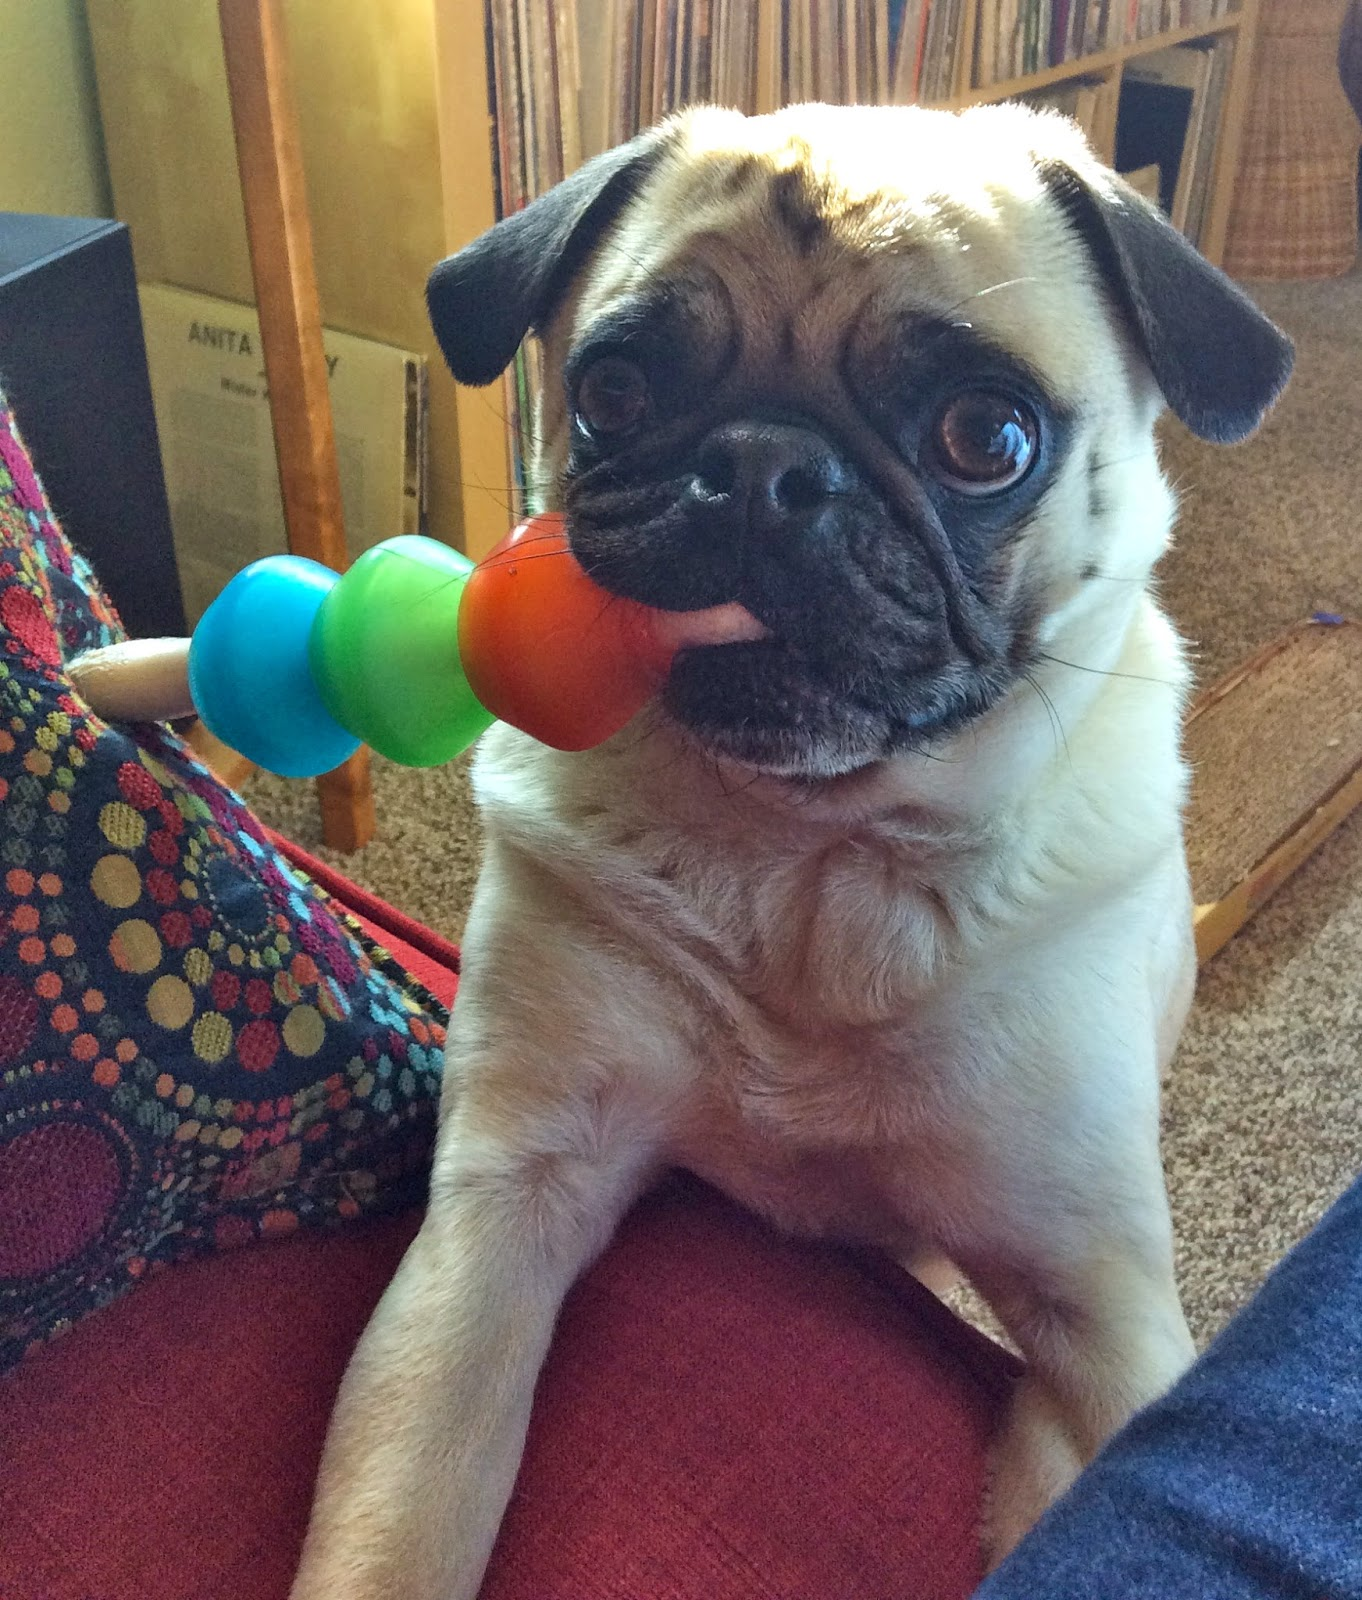 Liam the pug with his toy